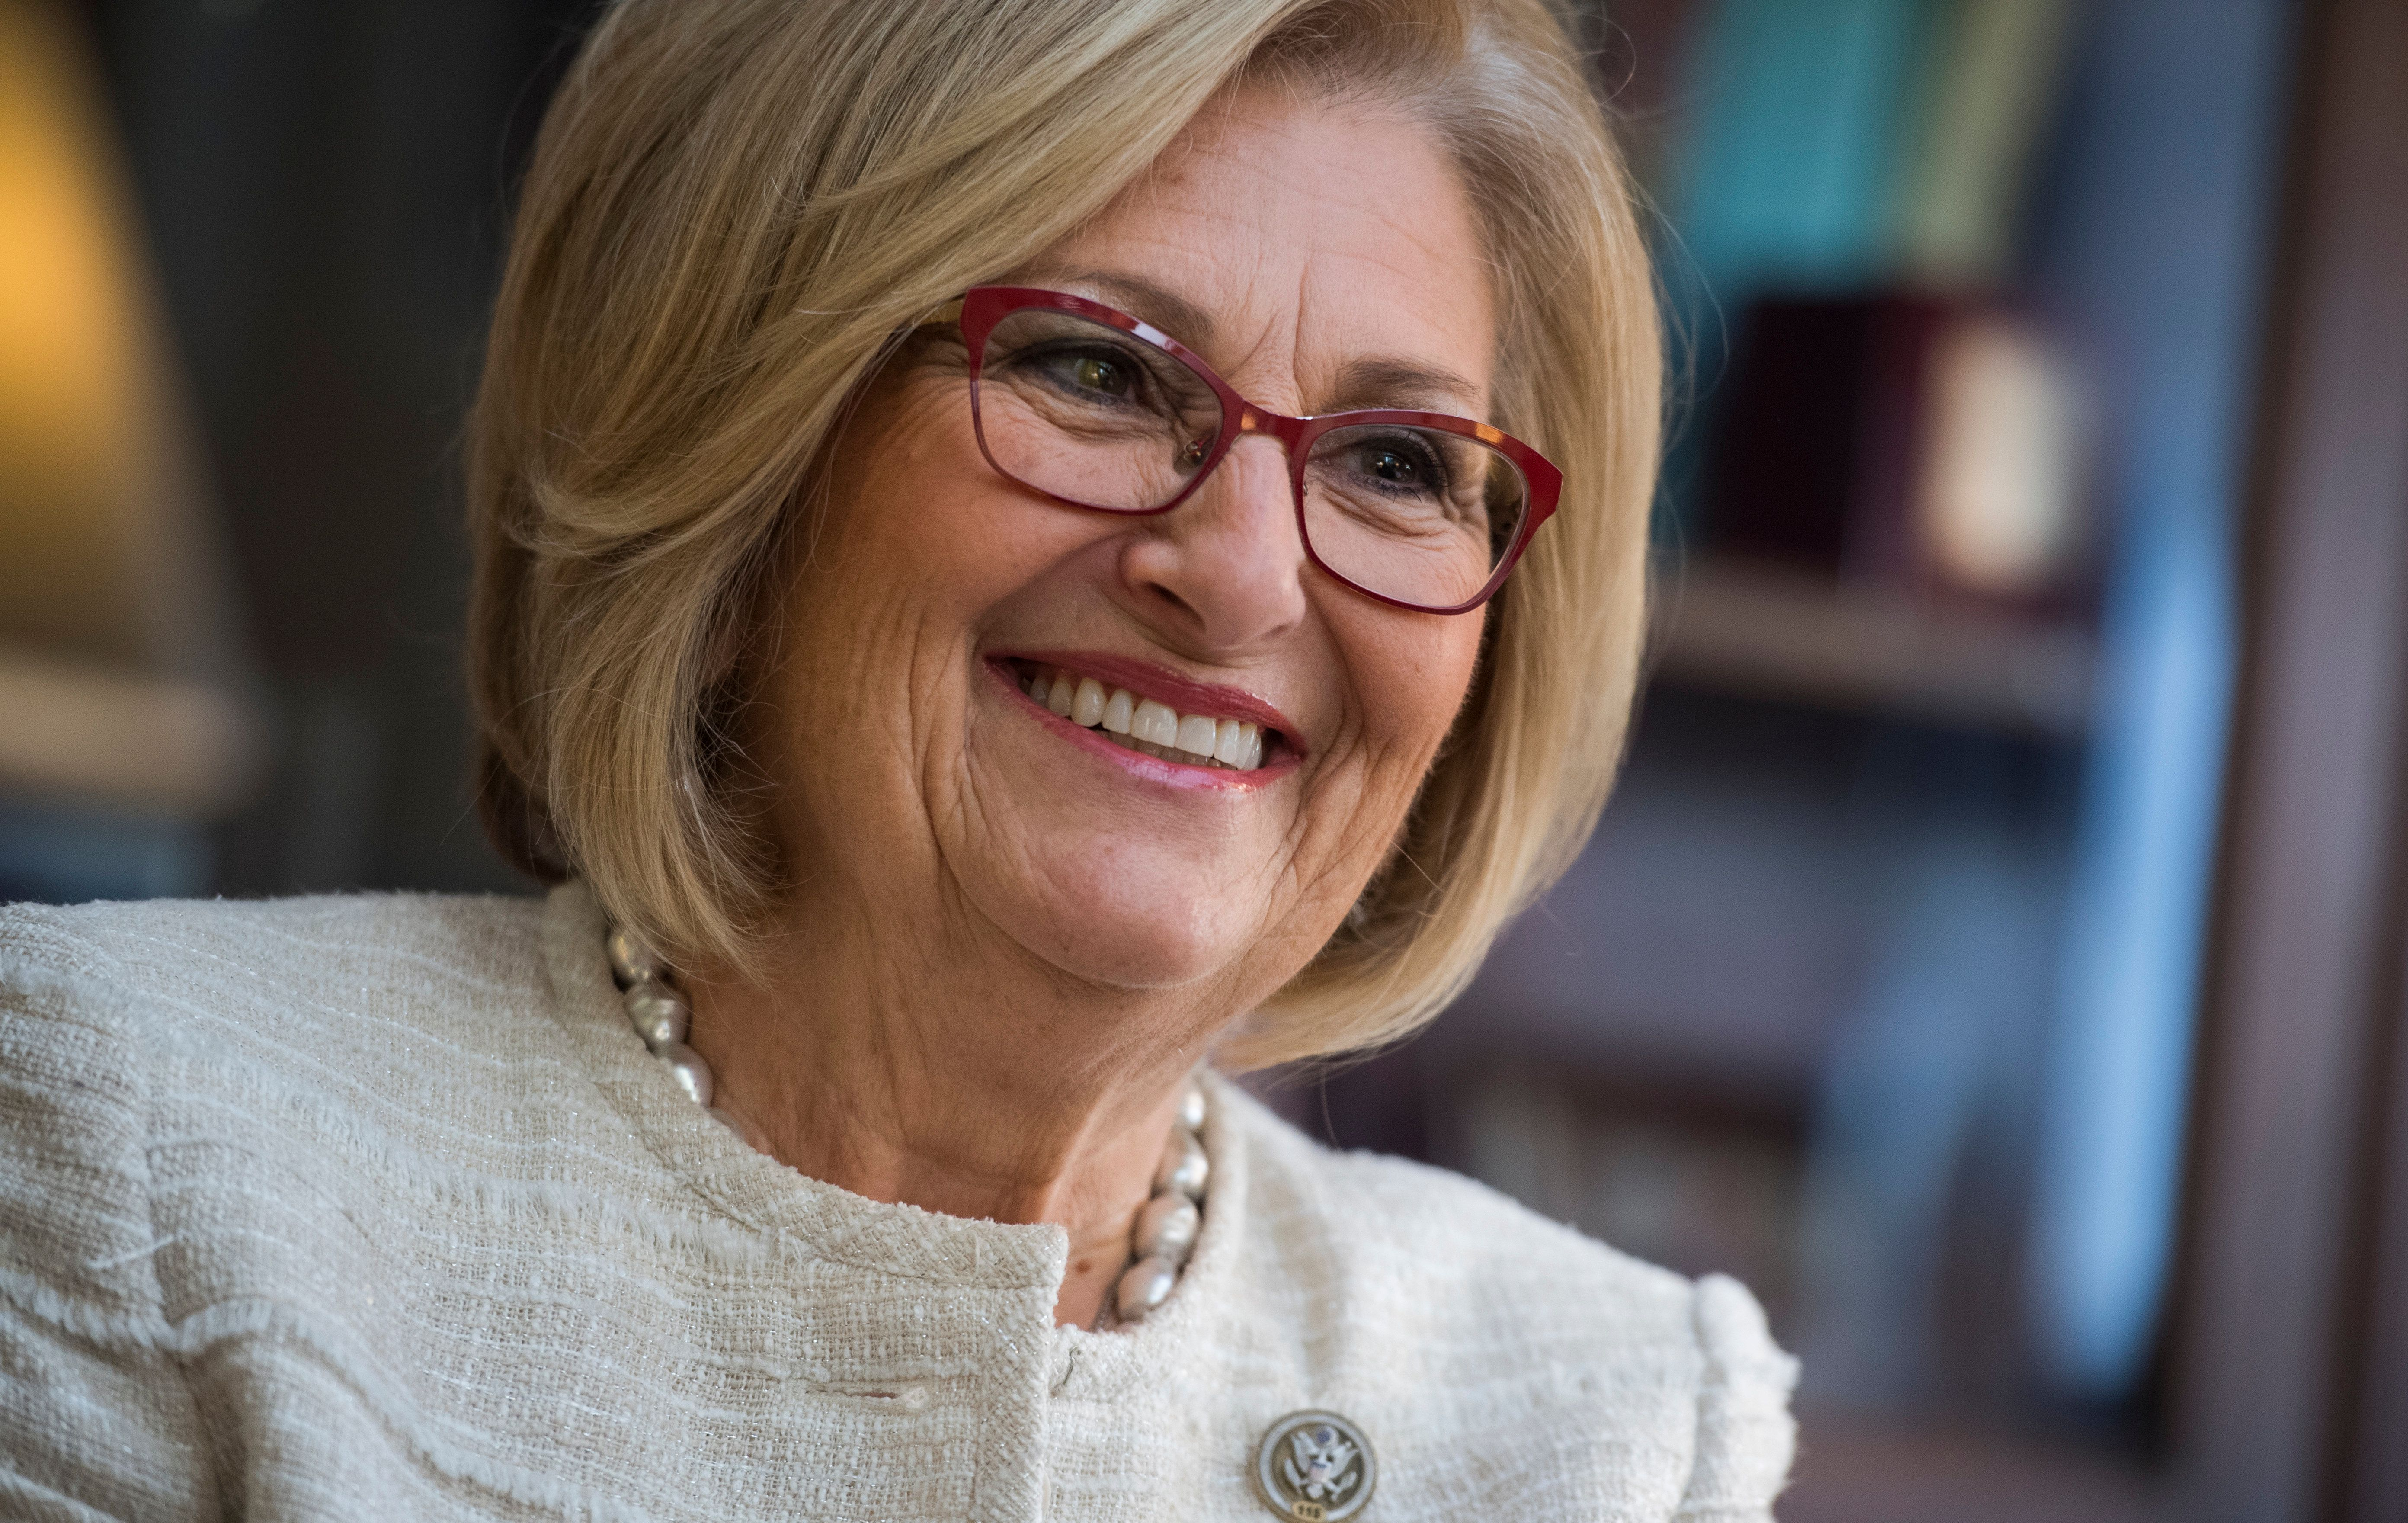 Rep. Diane Black (R-Tenn.) argues that it's hard to tell when someone is rich.